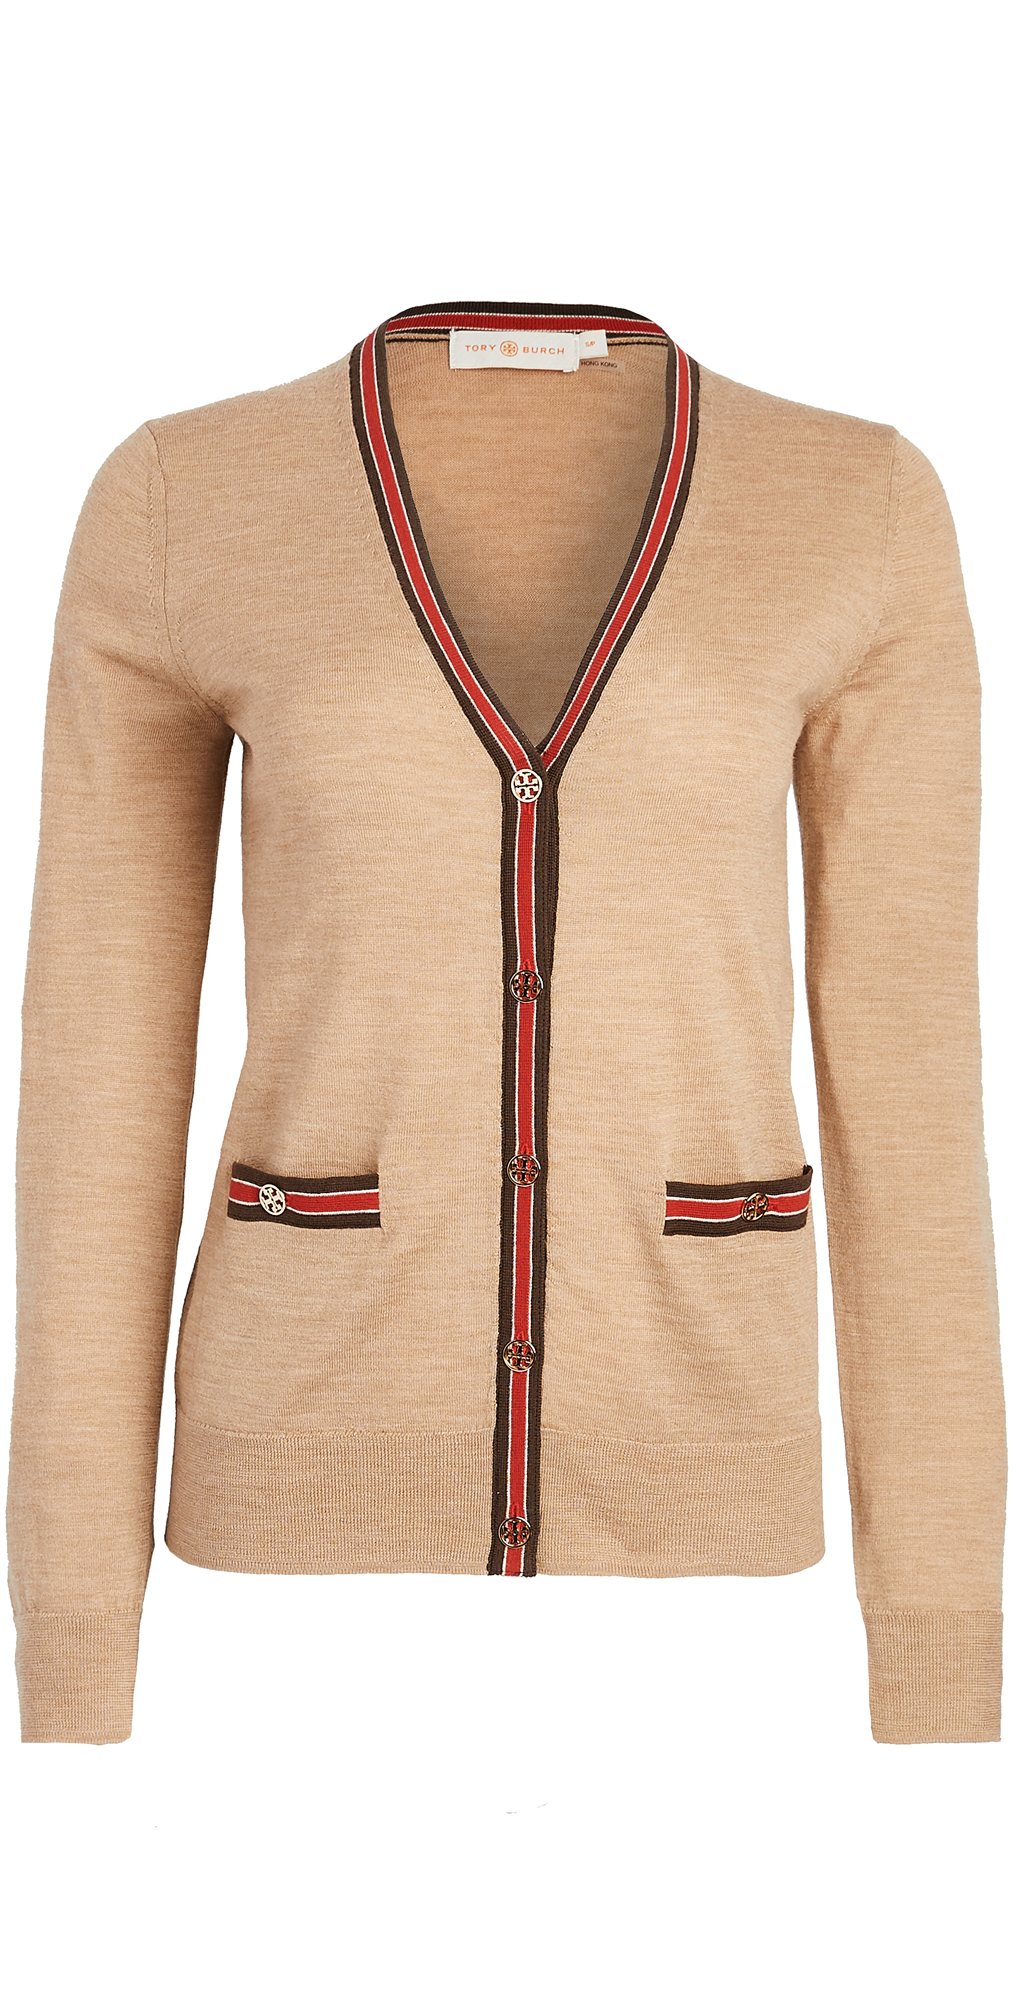 Tory Burch Colorblock Madeline Cardigan